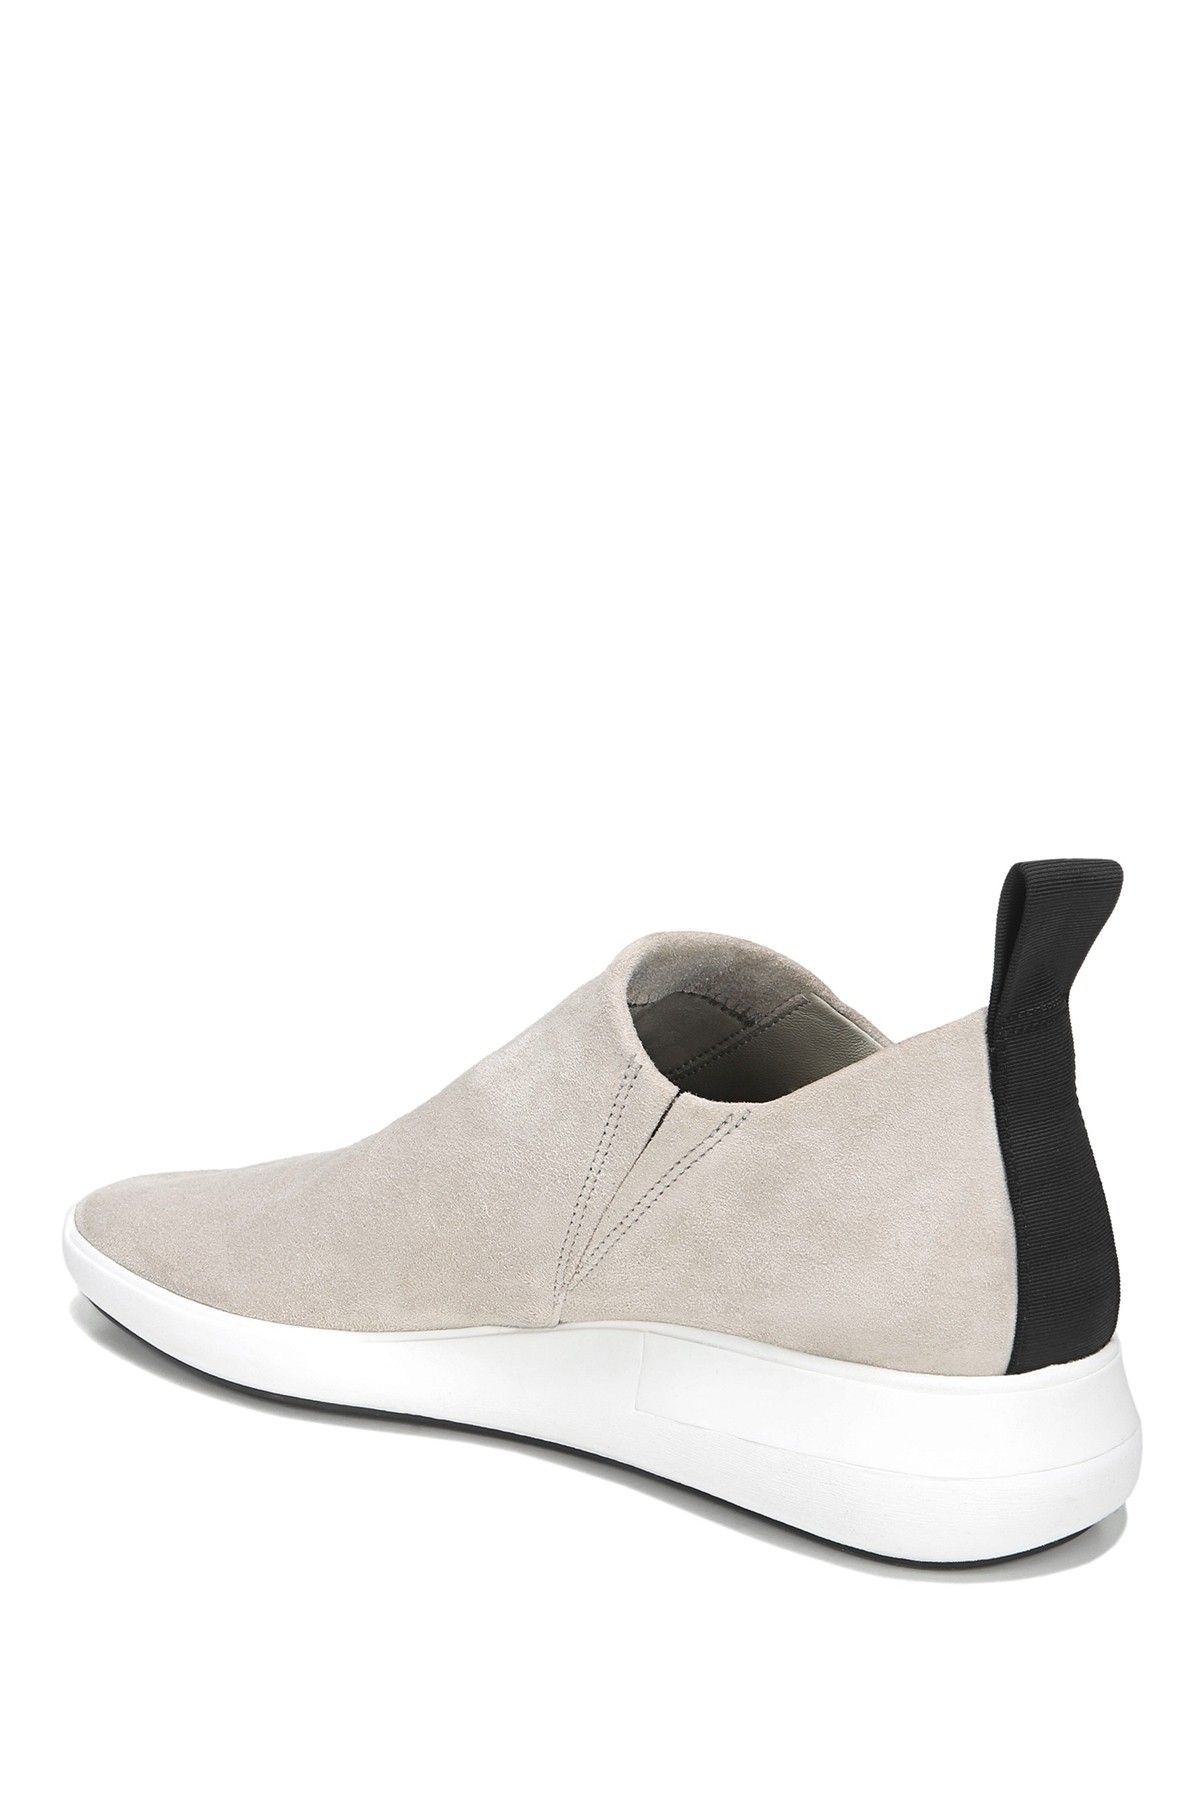 09758011fdb8 Marlow Slip-On Sneaker by Via Spiga on  nordstrom rack